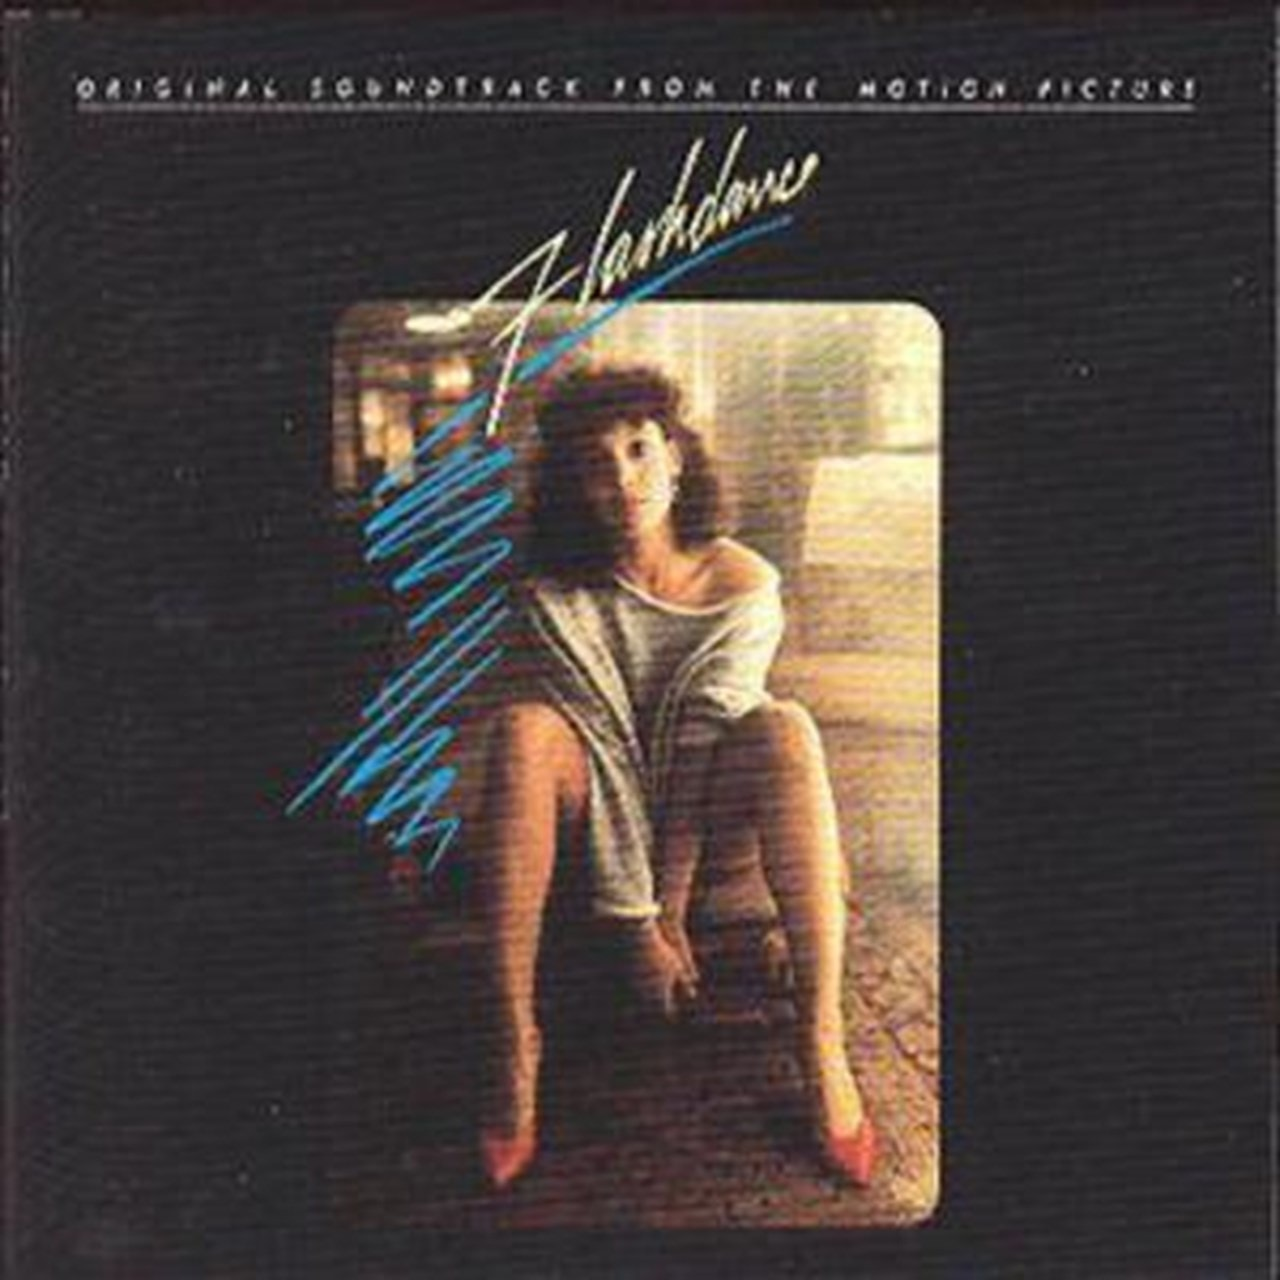 Flashdance - 1